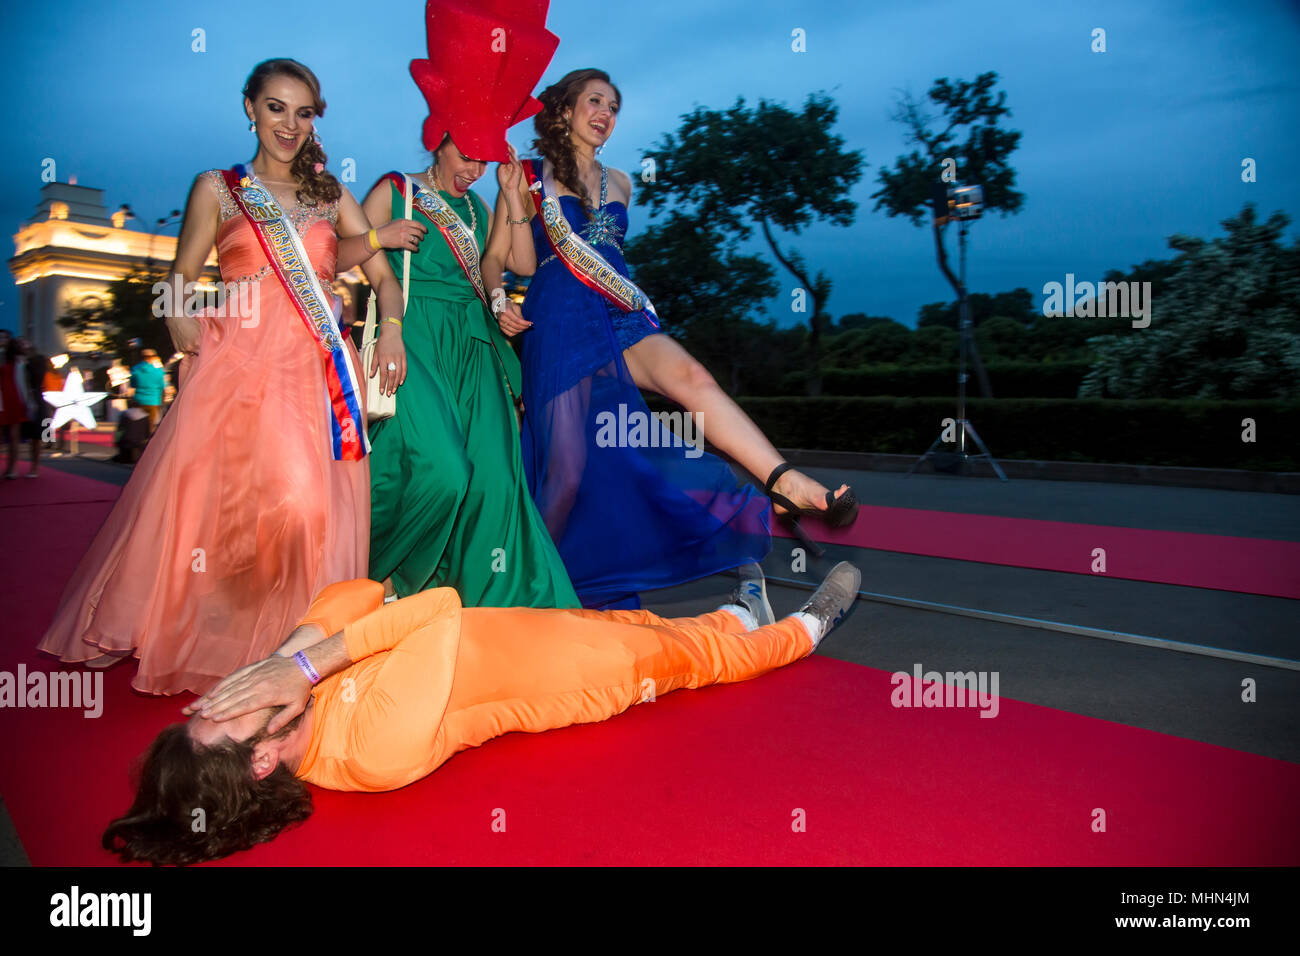 Moscow graduates go on the Red carpet from the Central Entrance to Gorky Park during the 'Moscow Graduation' holiday in Moscow, Russia - Stock Image